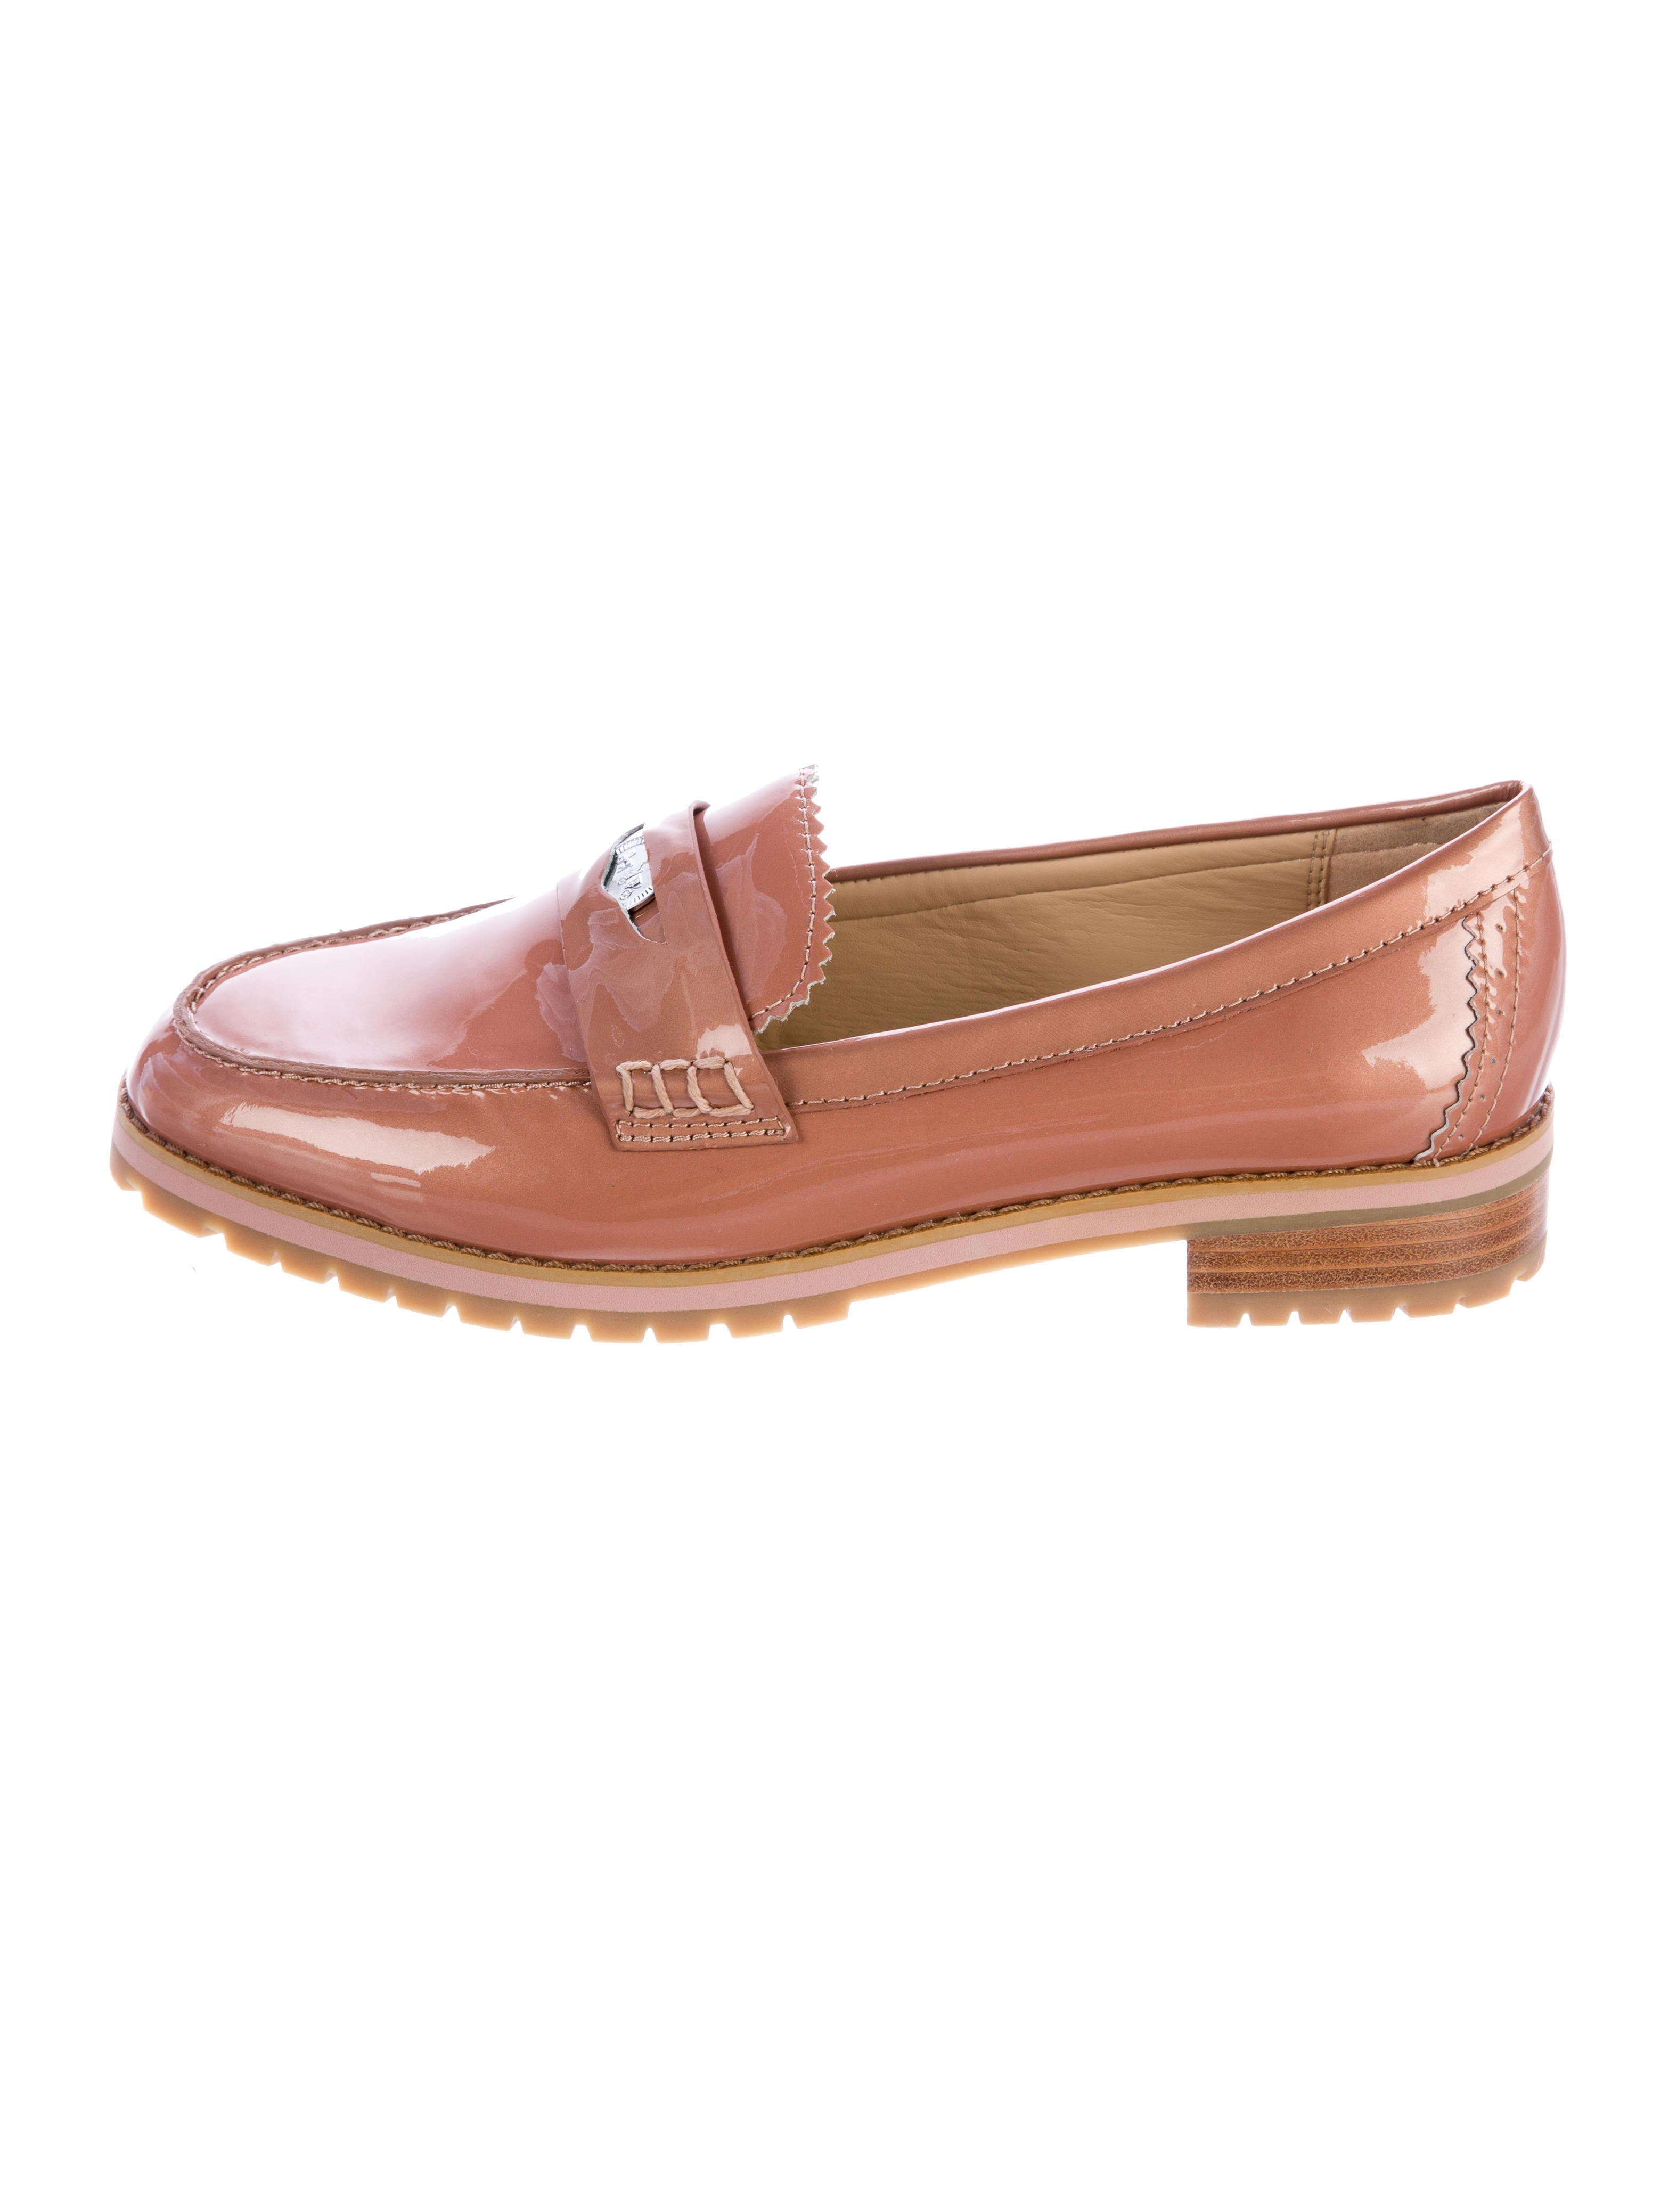 coach patent leather peyton loafers shoes cch20845